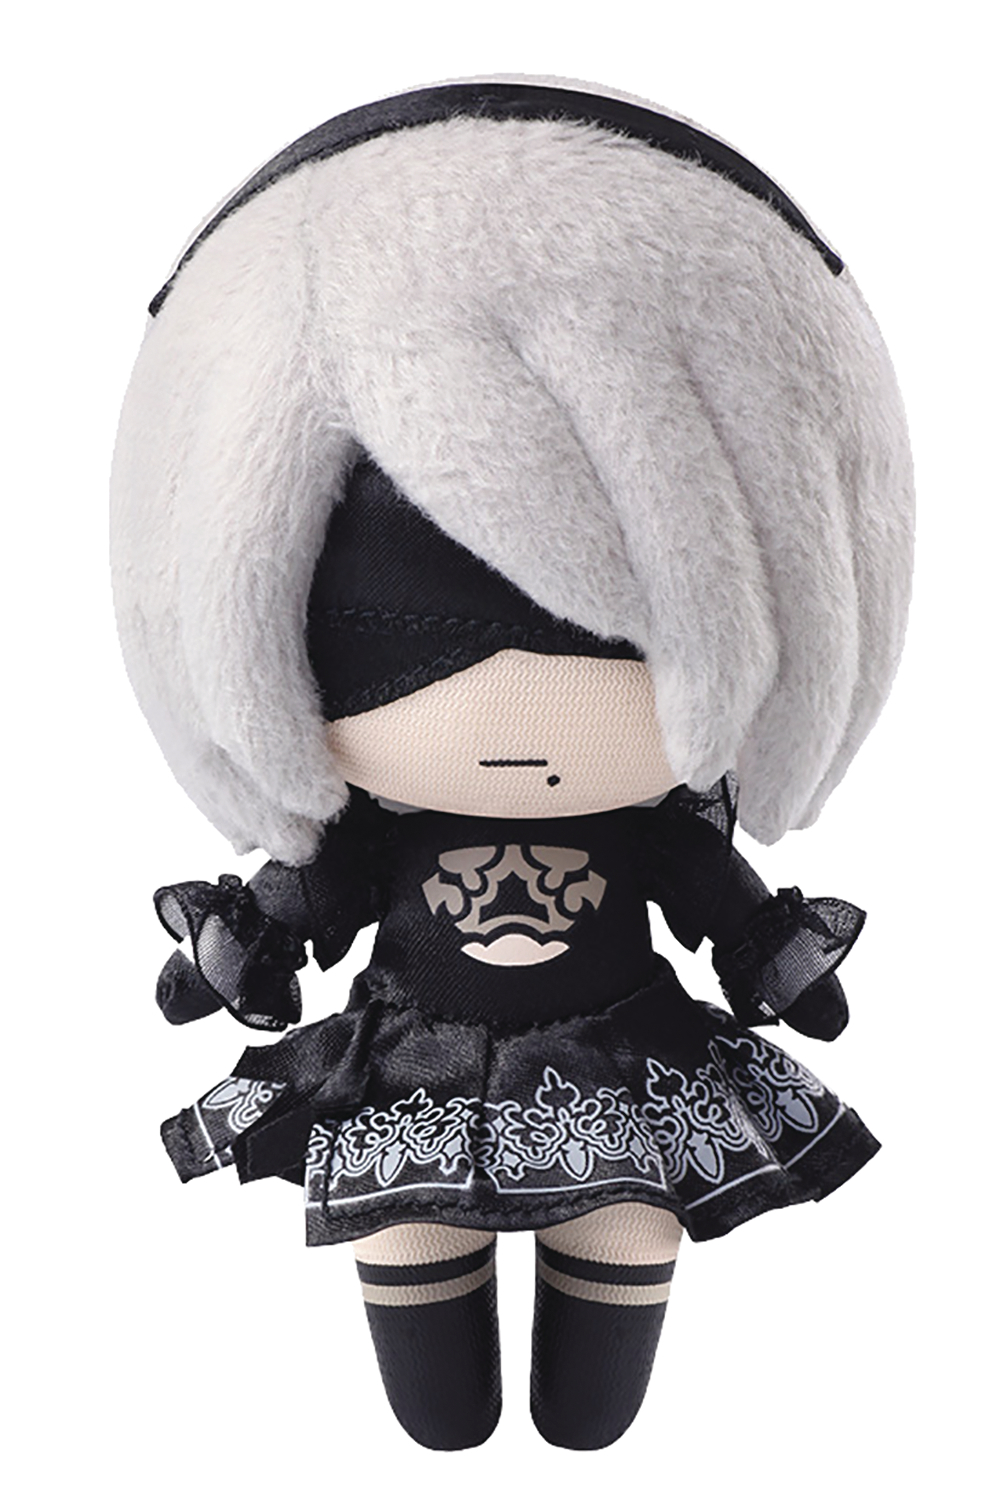 NIER AUTOMATA 2B MINI PLUSH (O/A)